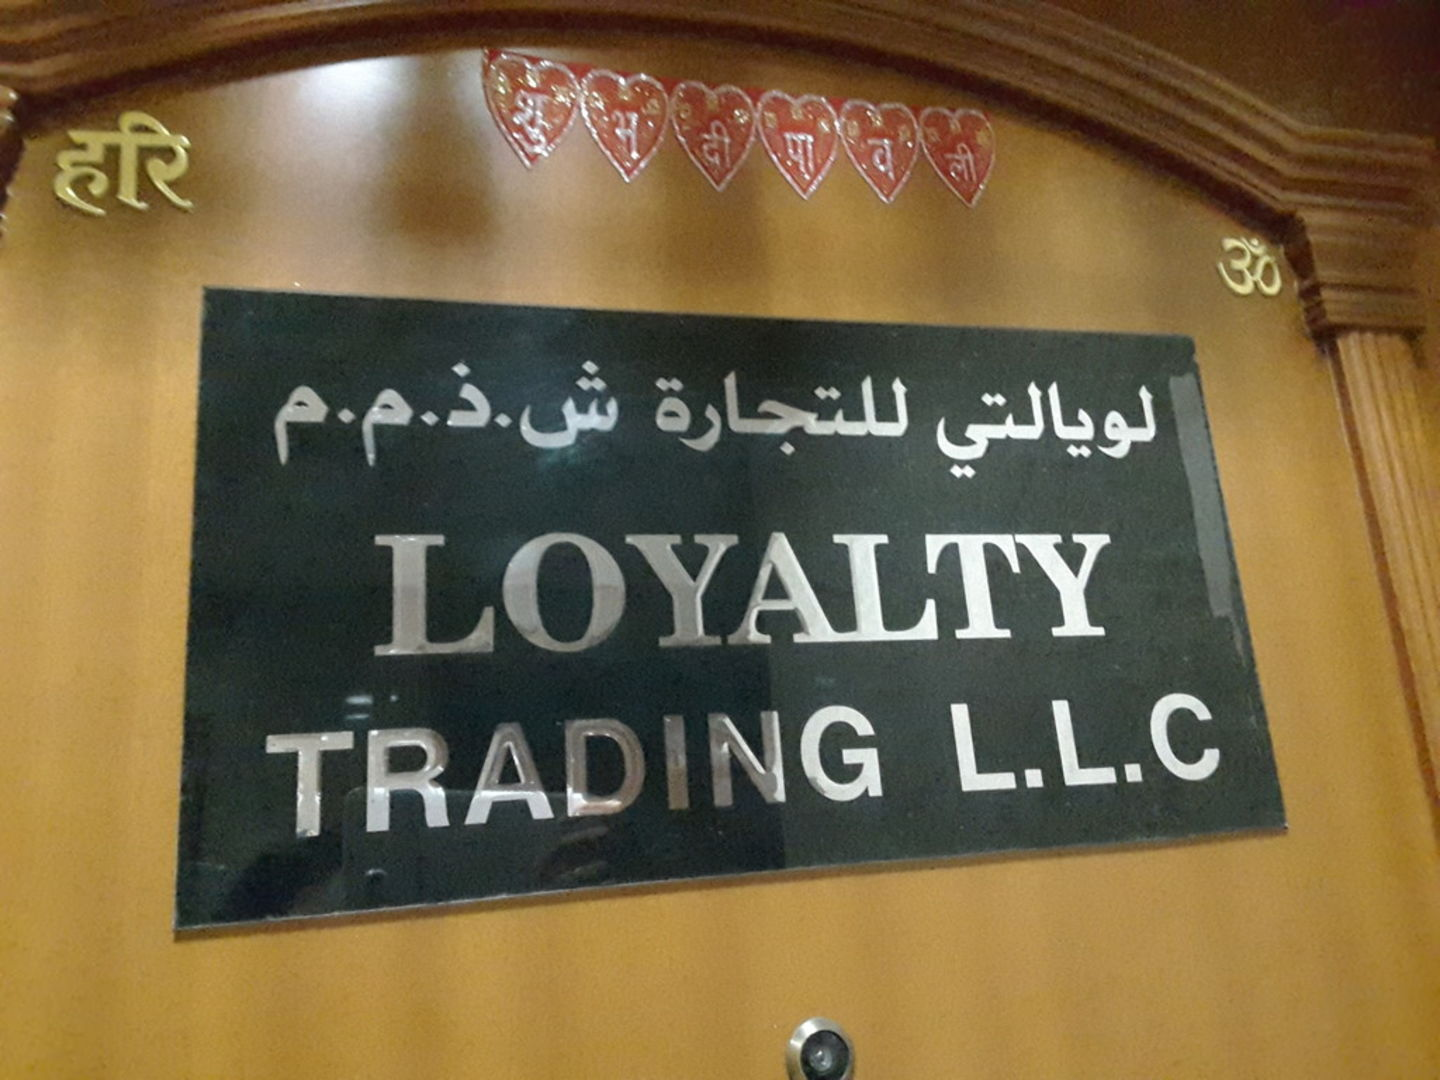 HiDubai-business-loyalty-trading-b2b-services-distributors-wholesalers-al-fahidi-al-souq-al-kabeer-dubai-2